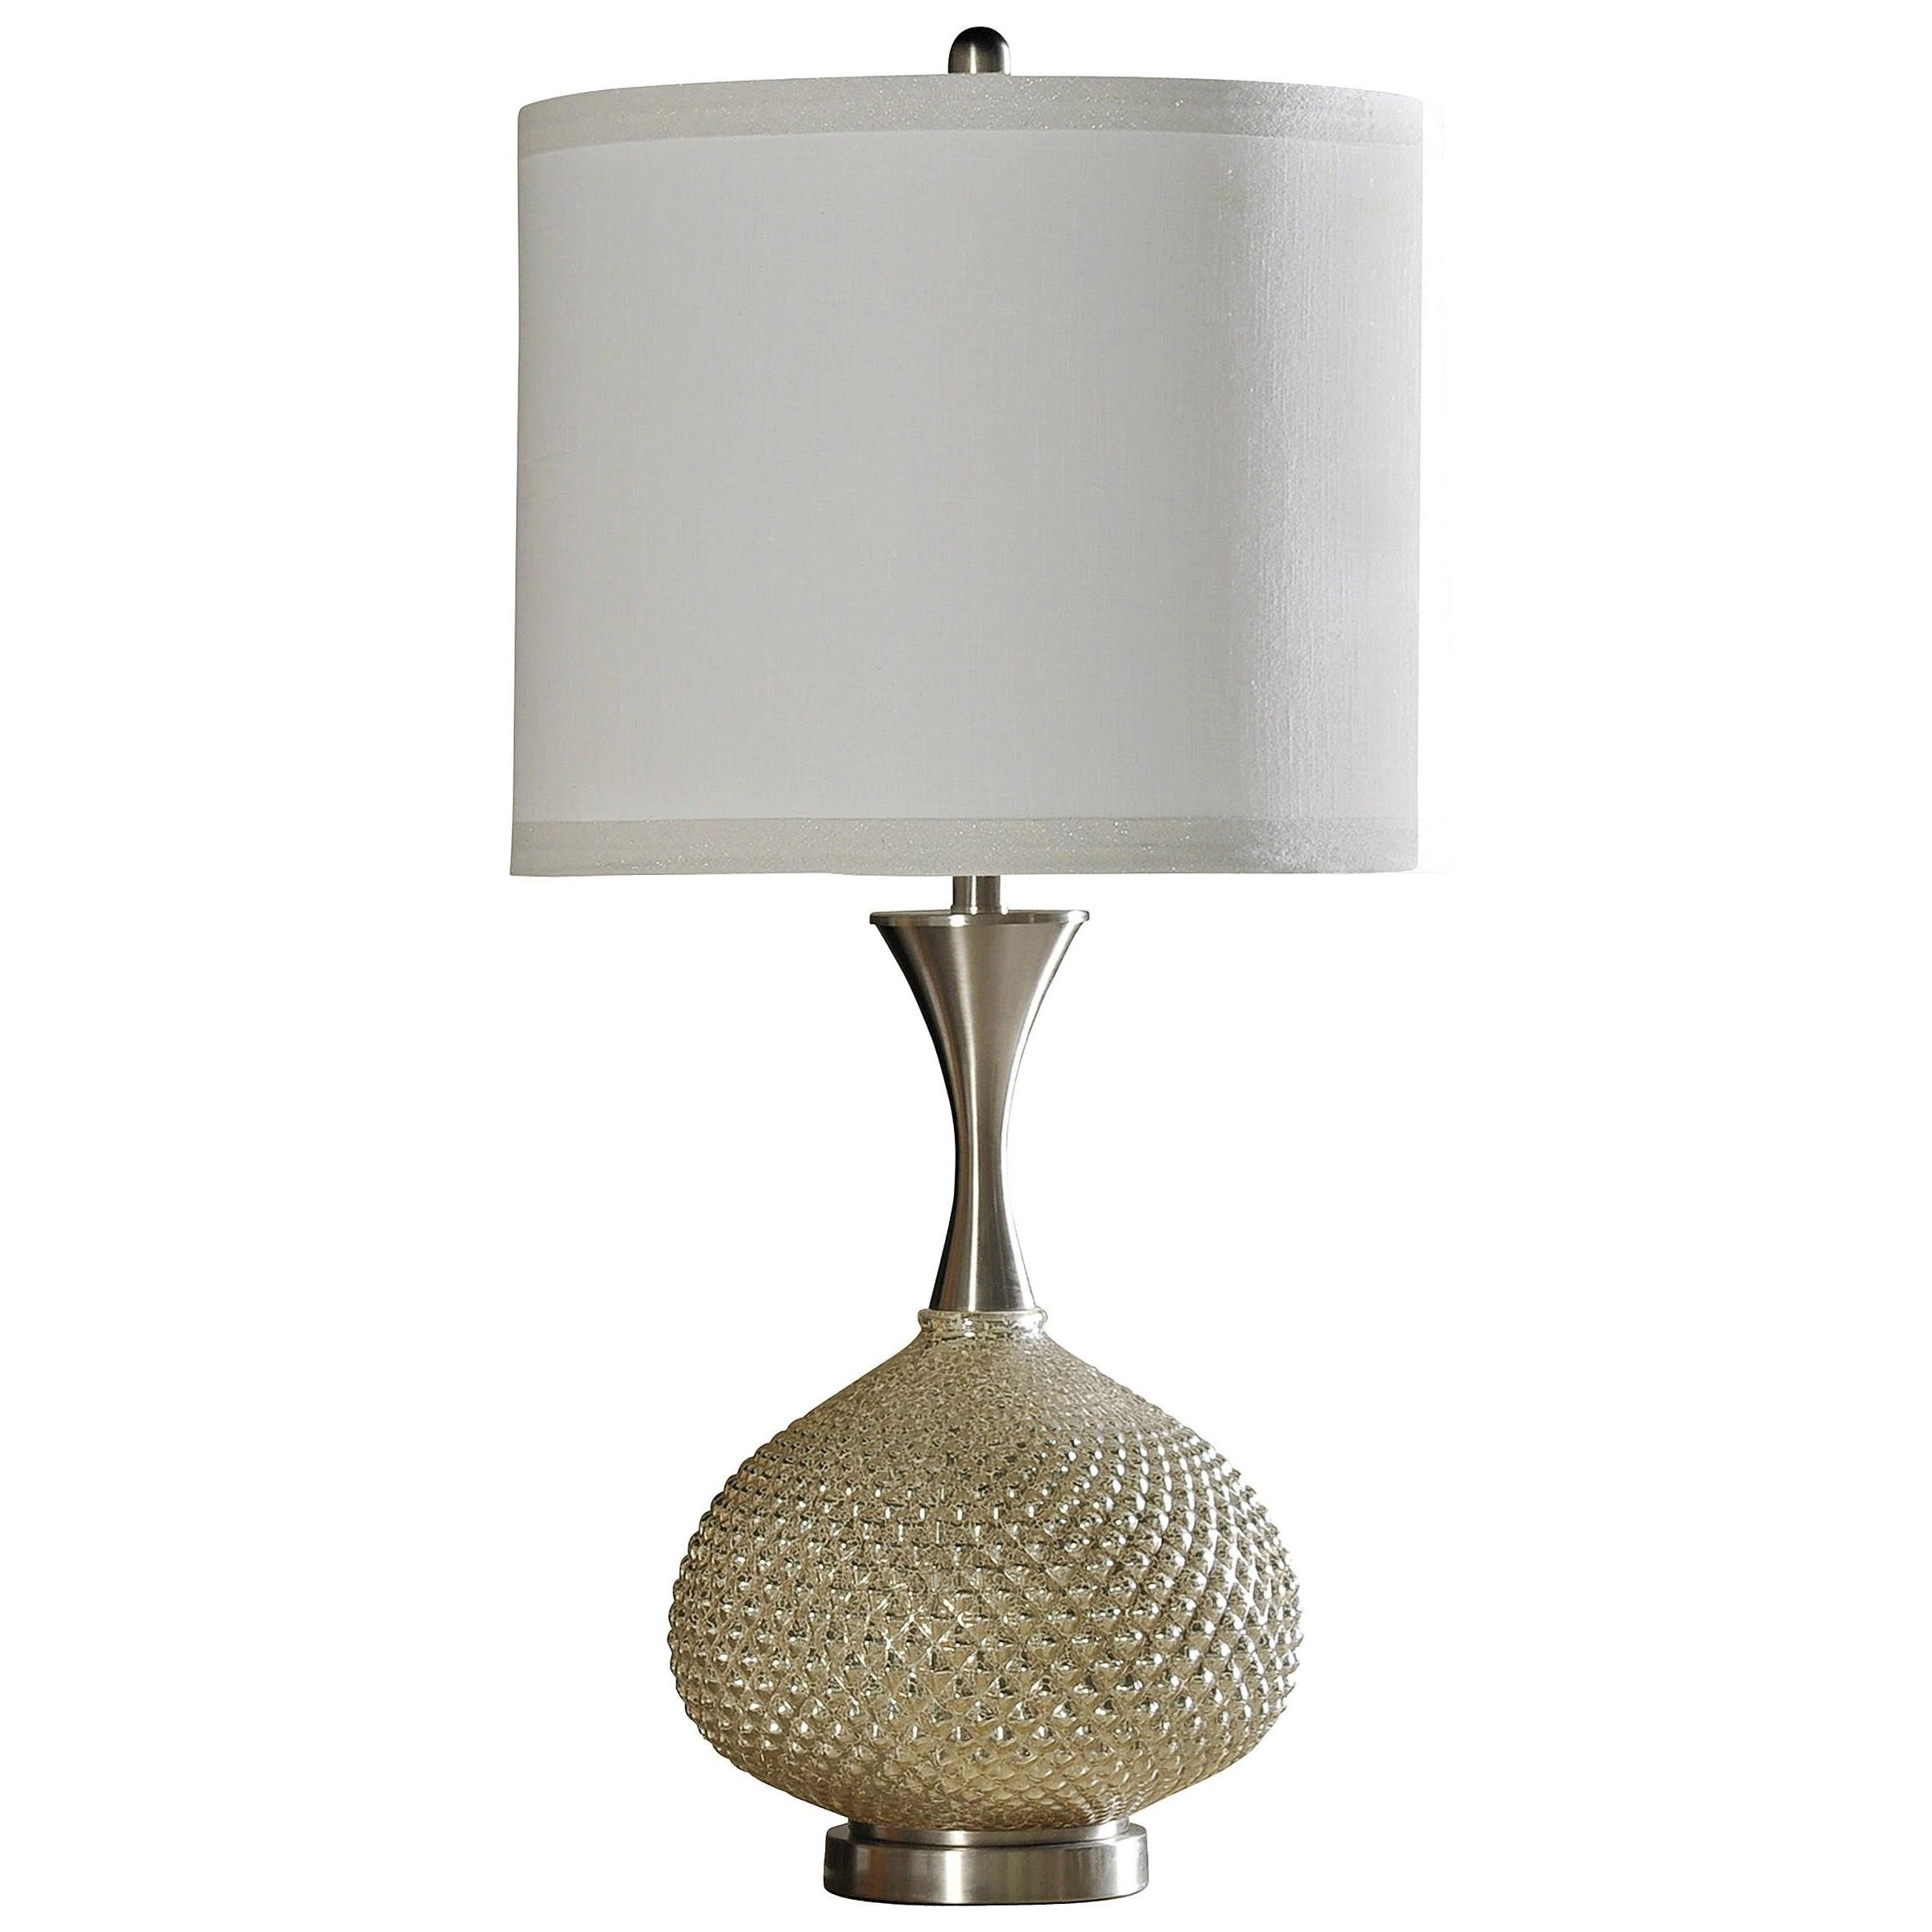 Lamps Transitional Table Lamp by StyleCraft at Alison Craig Home Furnishings